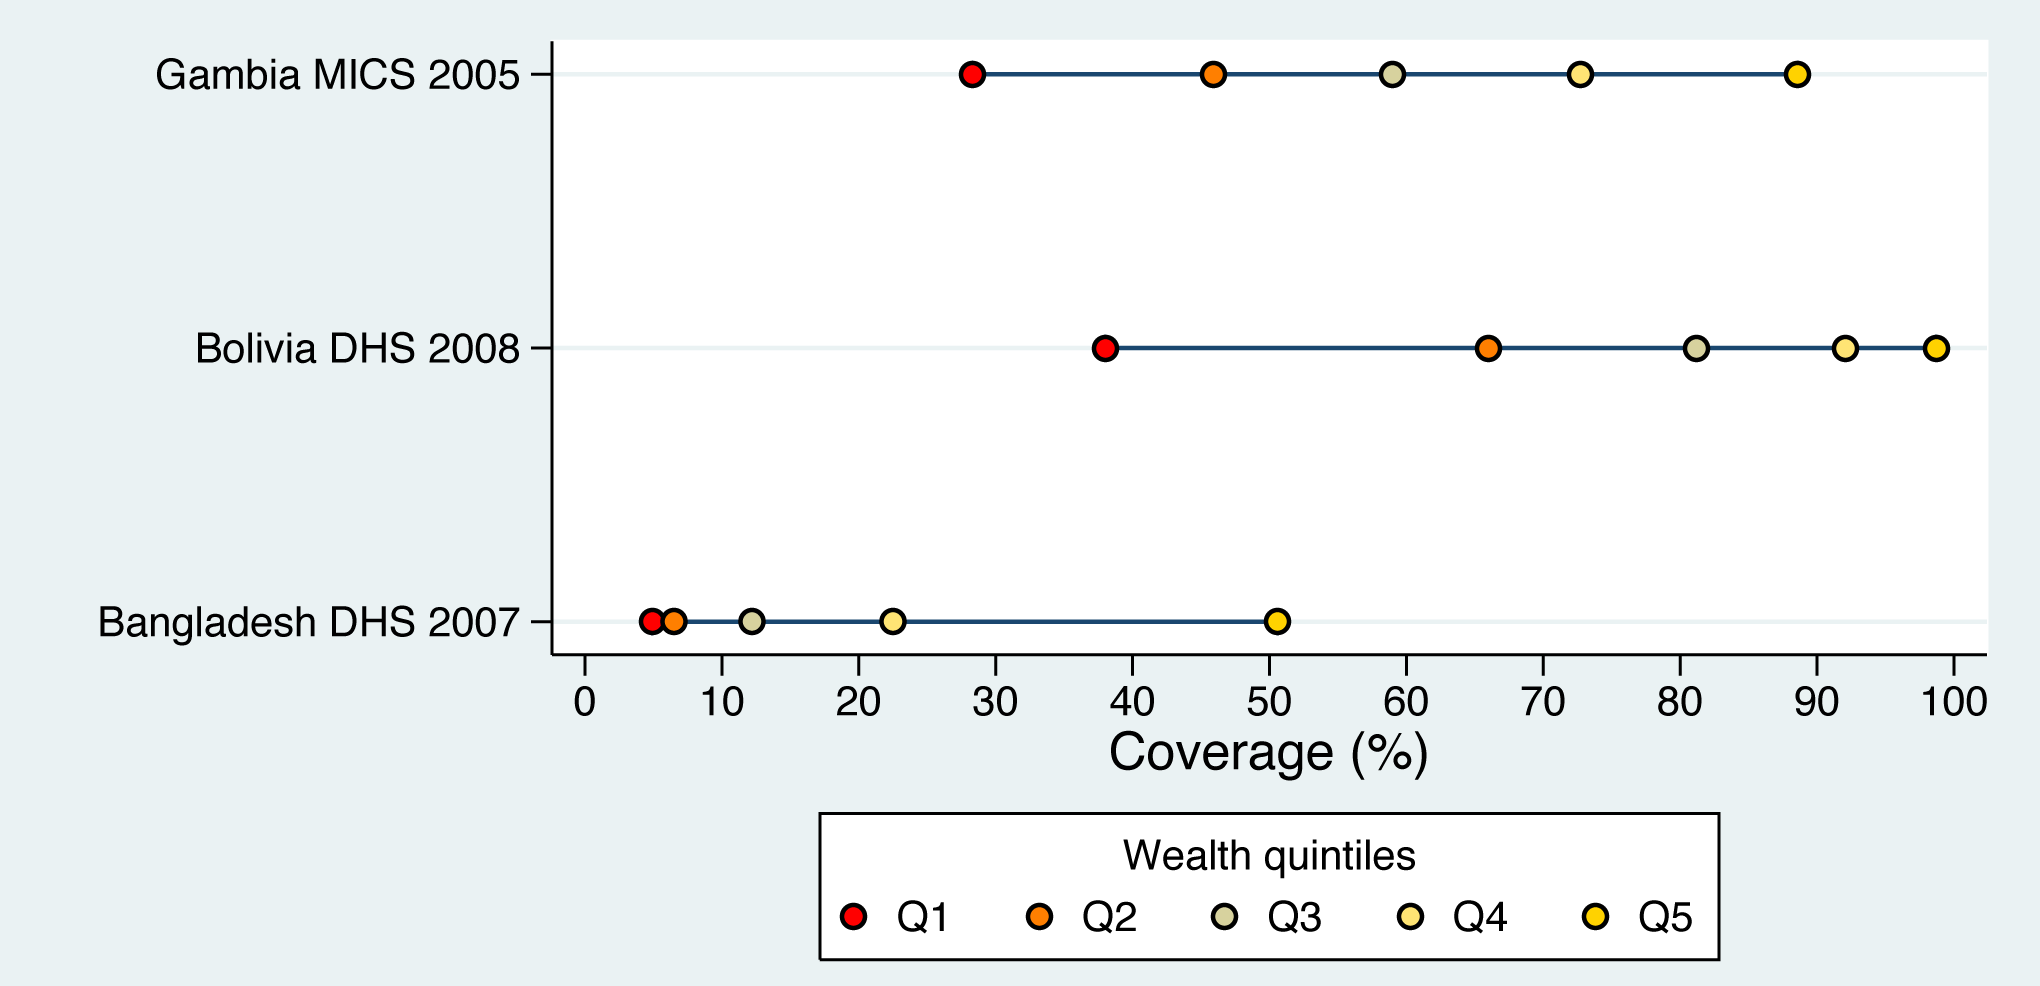 Linear, bottom, and top patterns of inequality for skilled birth attendance in Gambia, Bolivia, and Bangladesh, respectively.